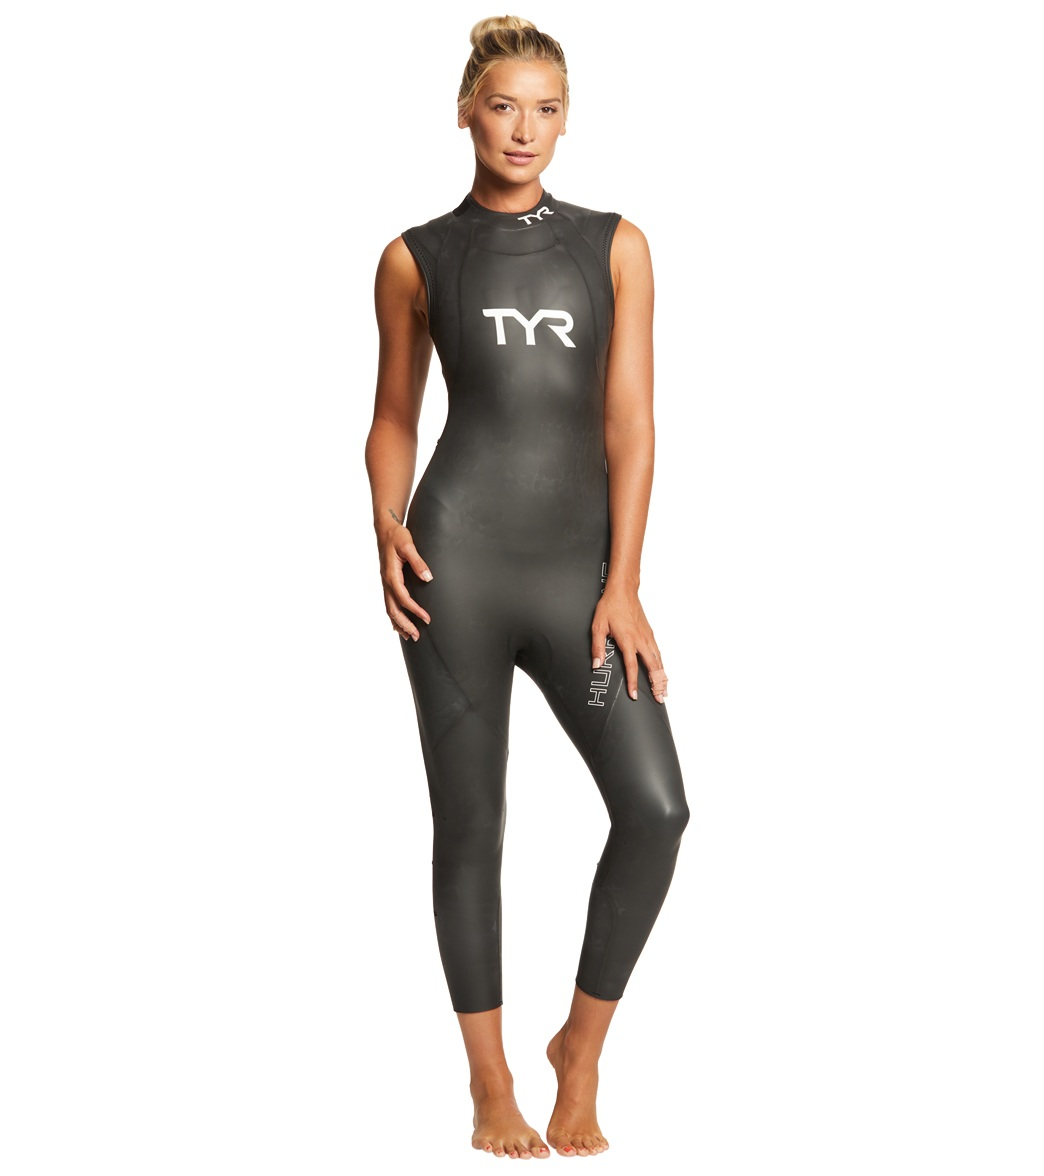 44cf00591050c TYR Women s Hurricane Cat 1 Sleeveless Triathlon Wetsuit at ...